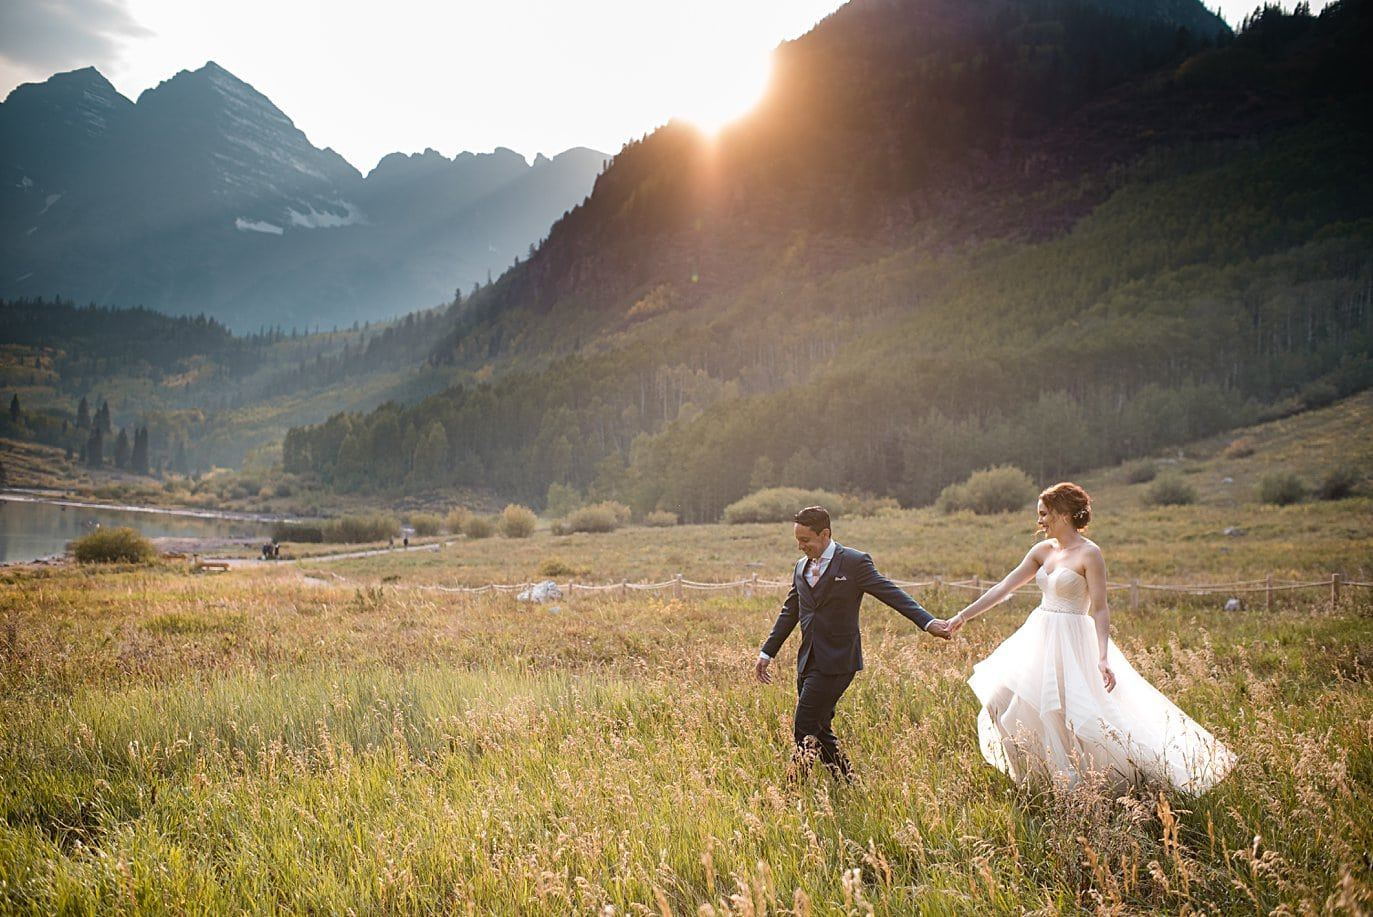 bride and groom walk hand in hand in front of Maroon Bells peaks at sunset at fall Maroon Bells wedding by Aspen wedding photographer Jennie Crate